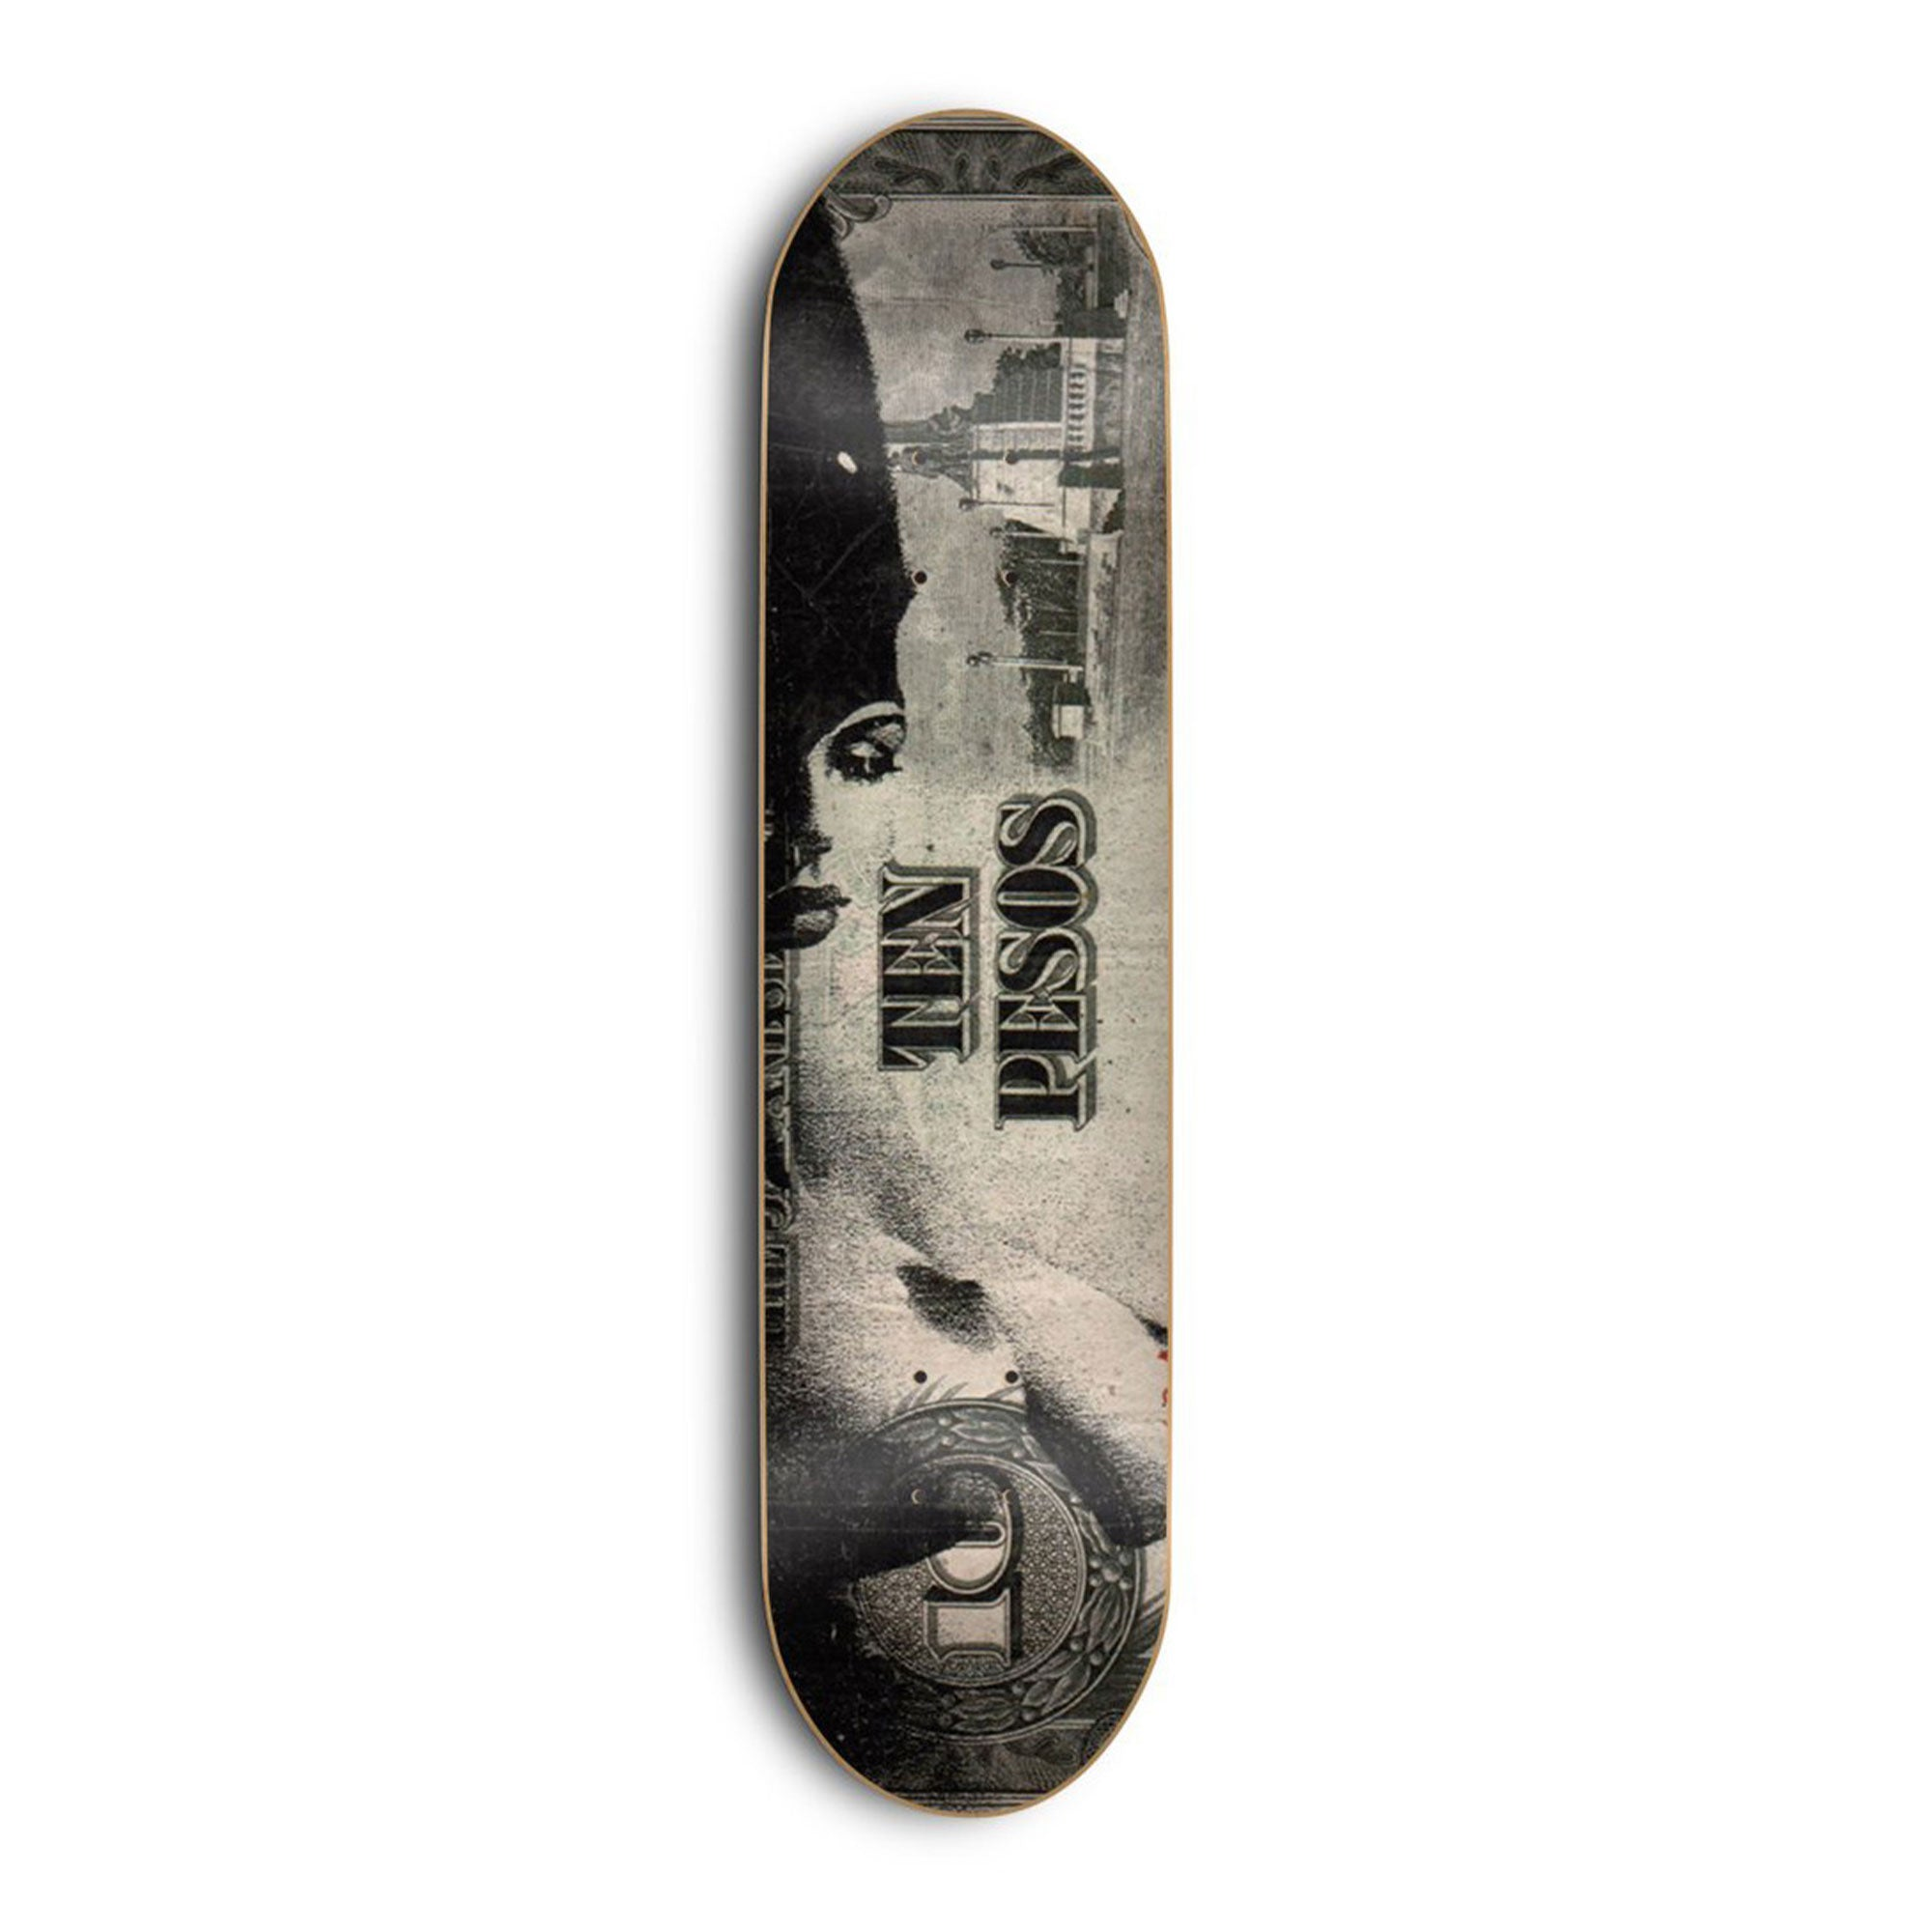 Skate Mental Dads Money Anderson Deck Product Photo #1